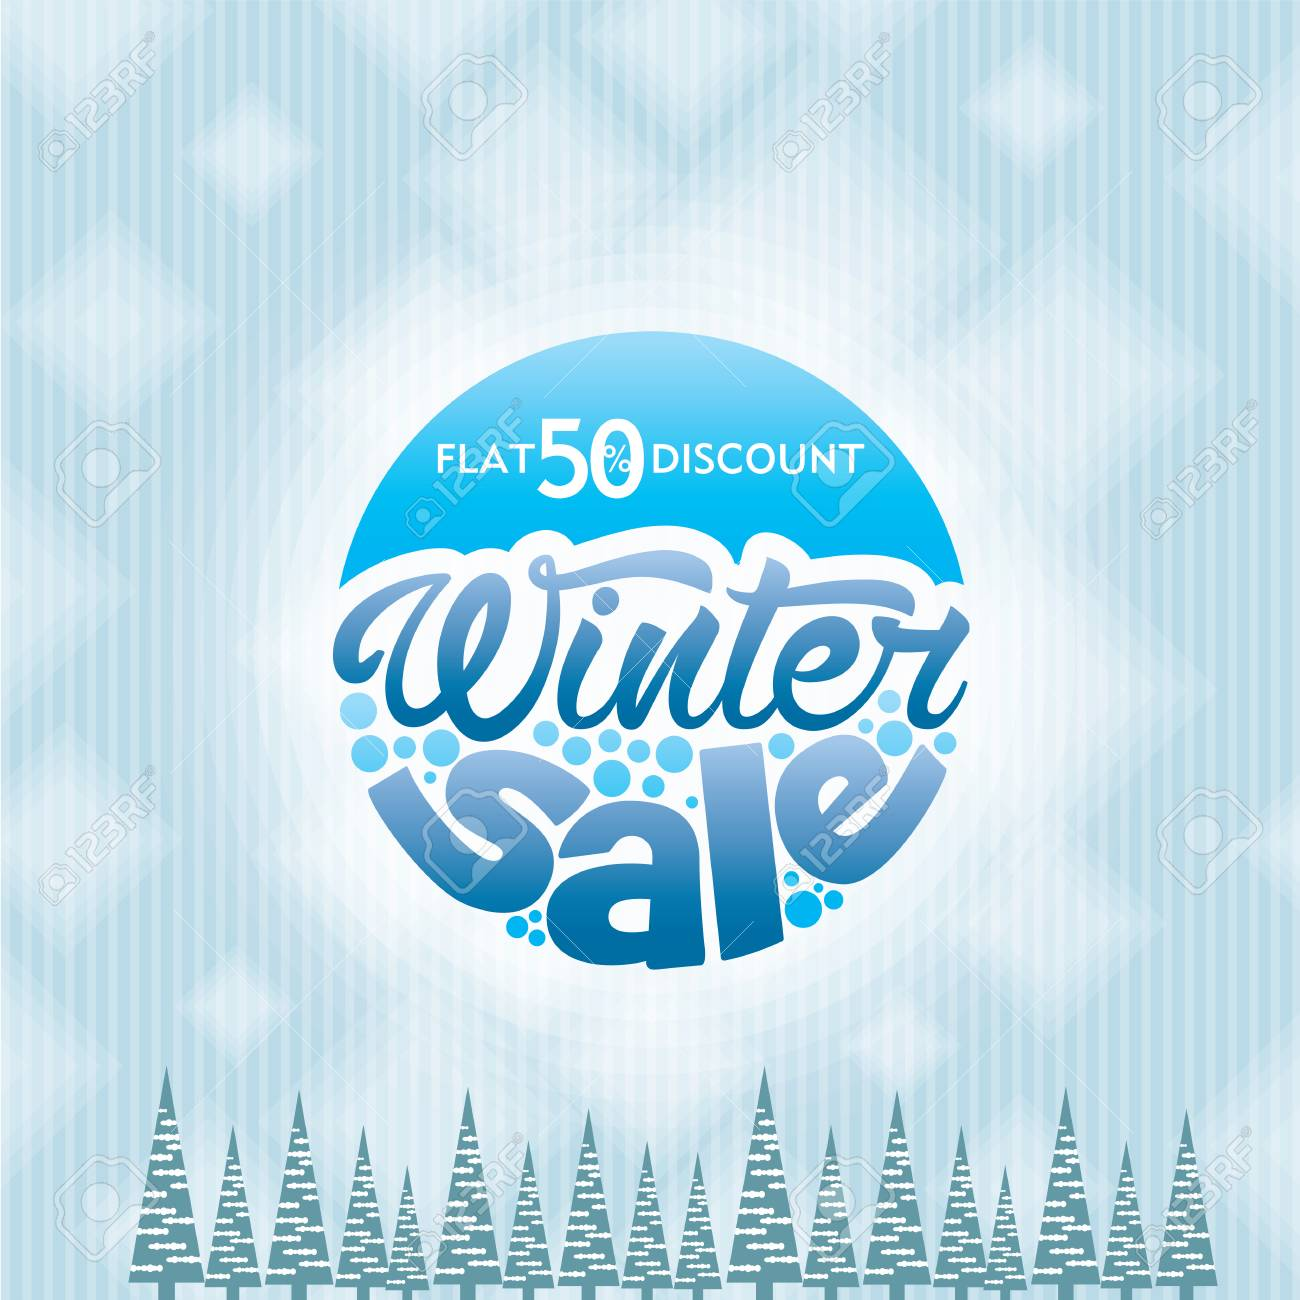 Winter Sale Design In Blue Color For Business Promotion Royalty Free ...